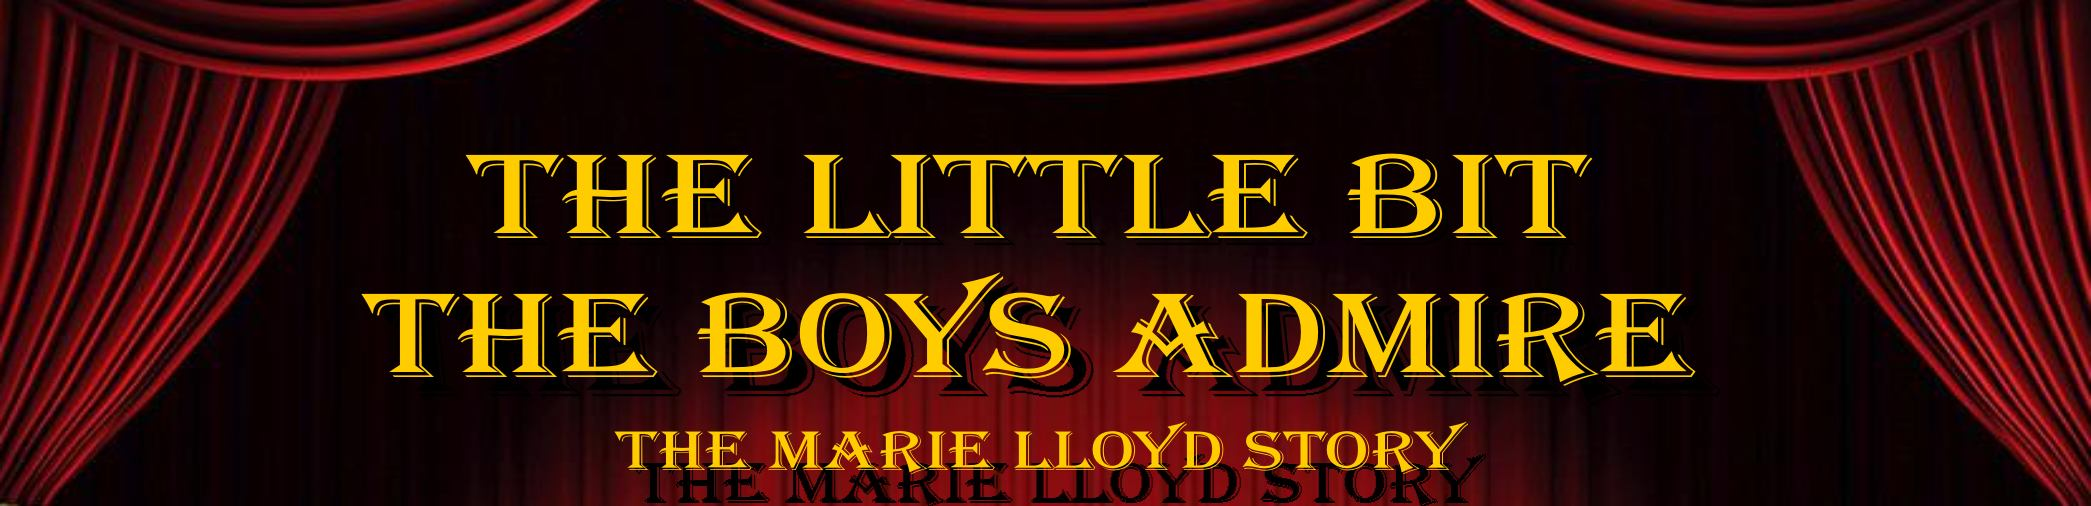 THE LITTLE BIT THE BOYS ADMIRE, The Marie LLoyd Story